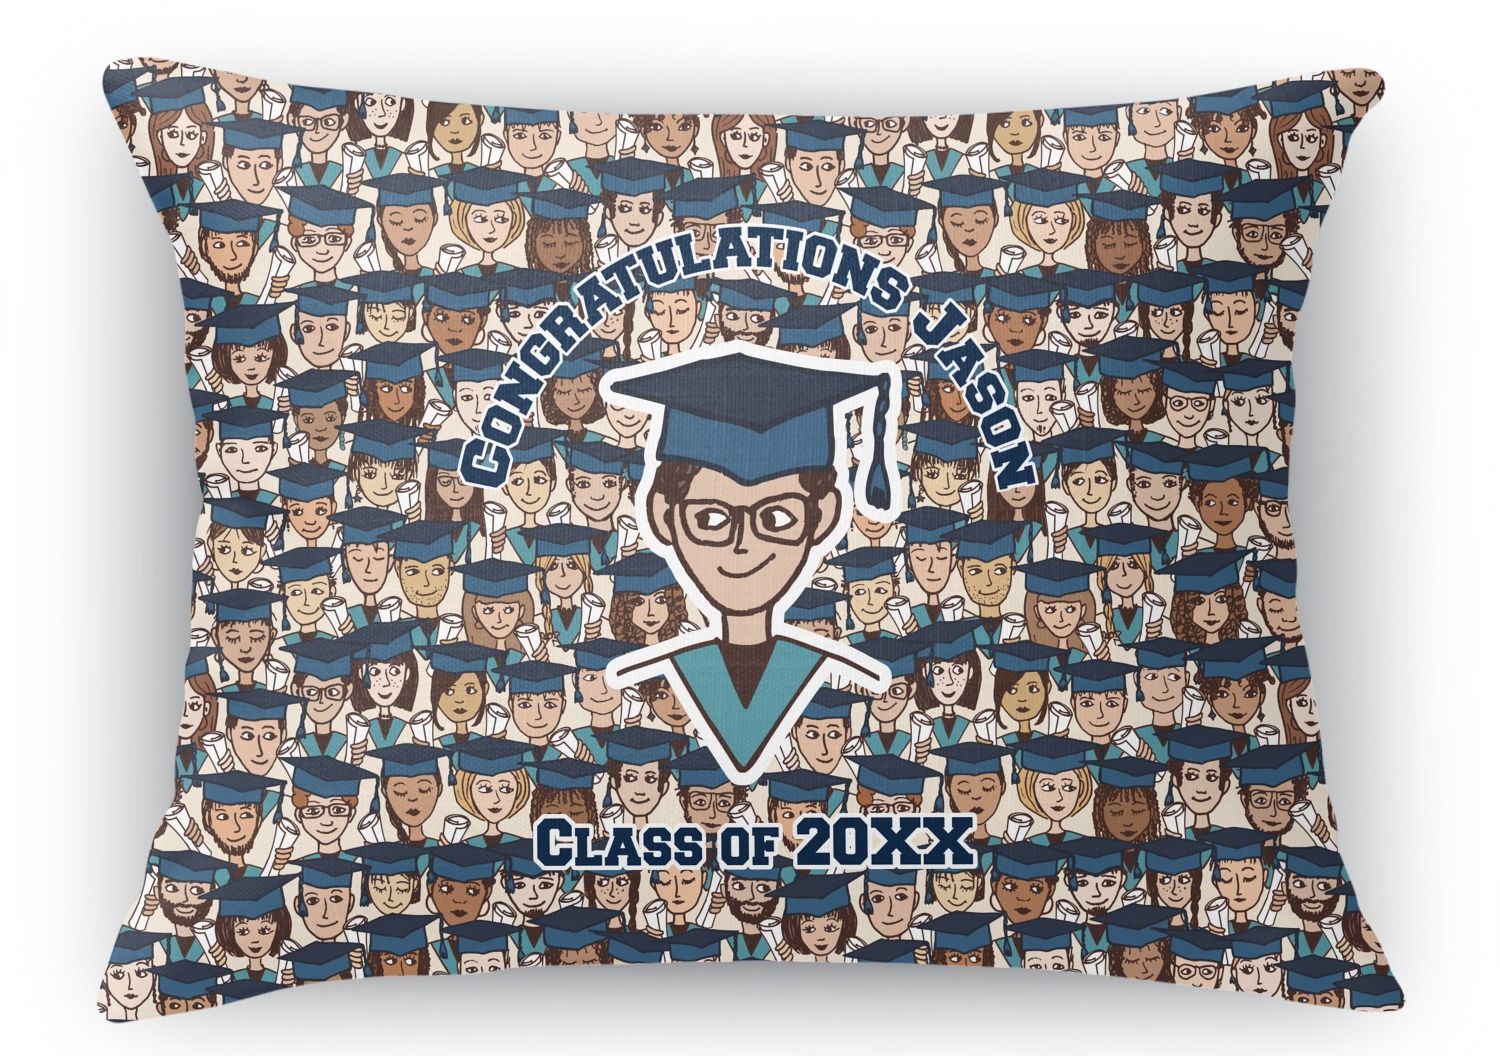 Rectangular Throw Pillow Dimensions : Graduating Students Rectangular Throw Pillow - 18